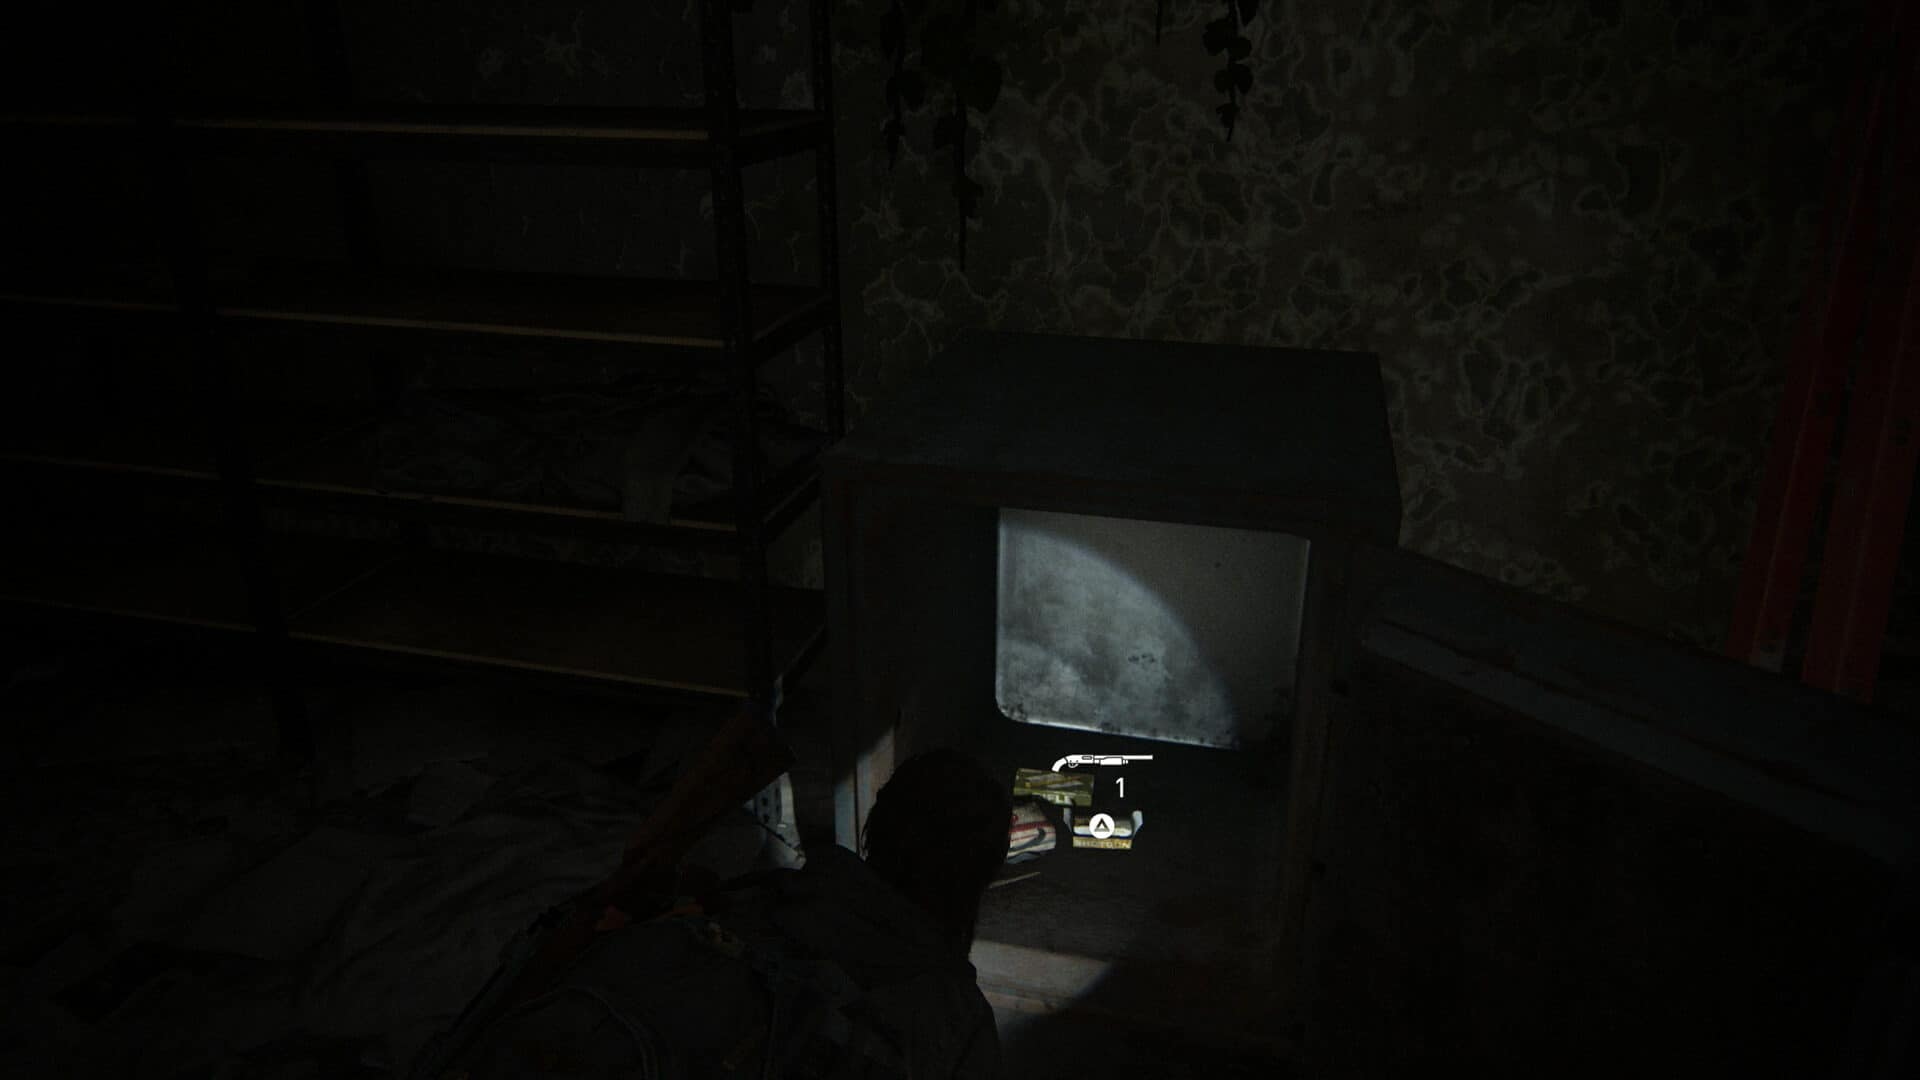 You can finde some ammo inside the safe in the second-hand shop Wellwishes in The Last of Us 2.